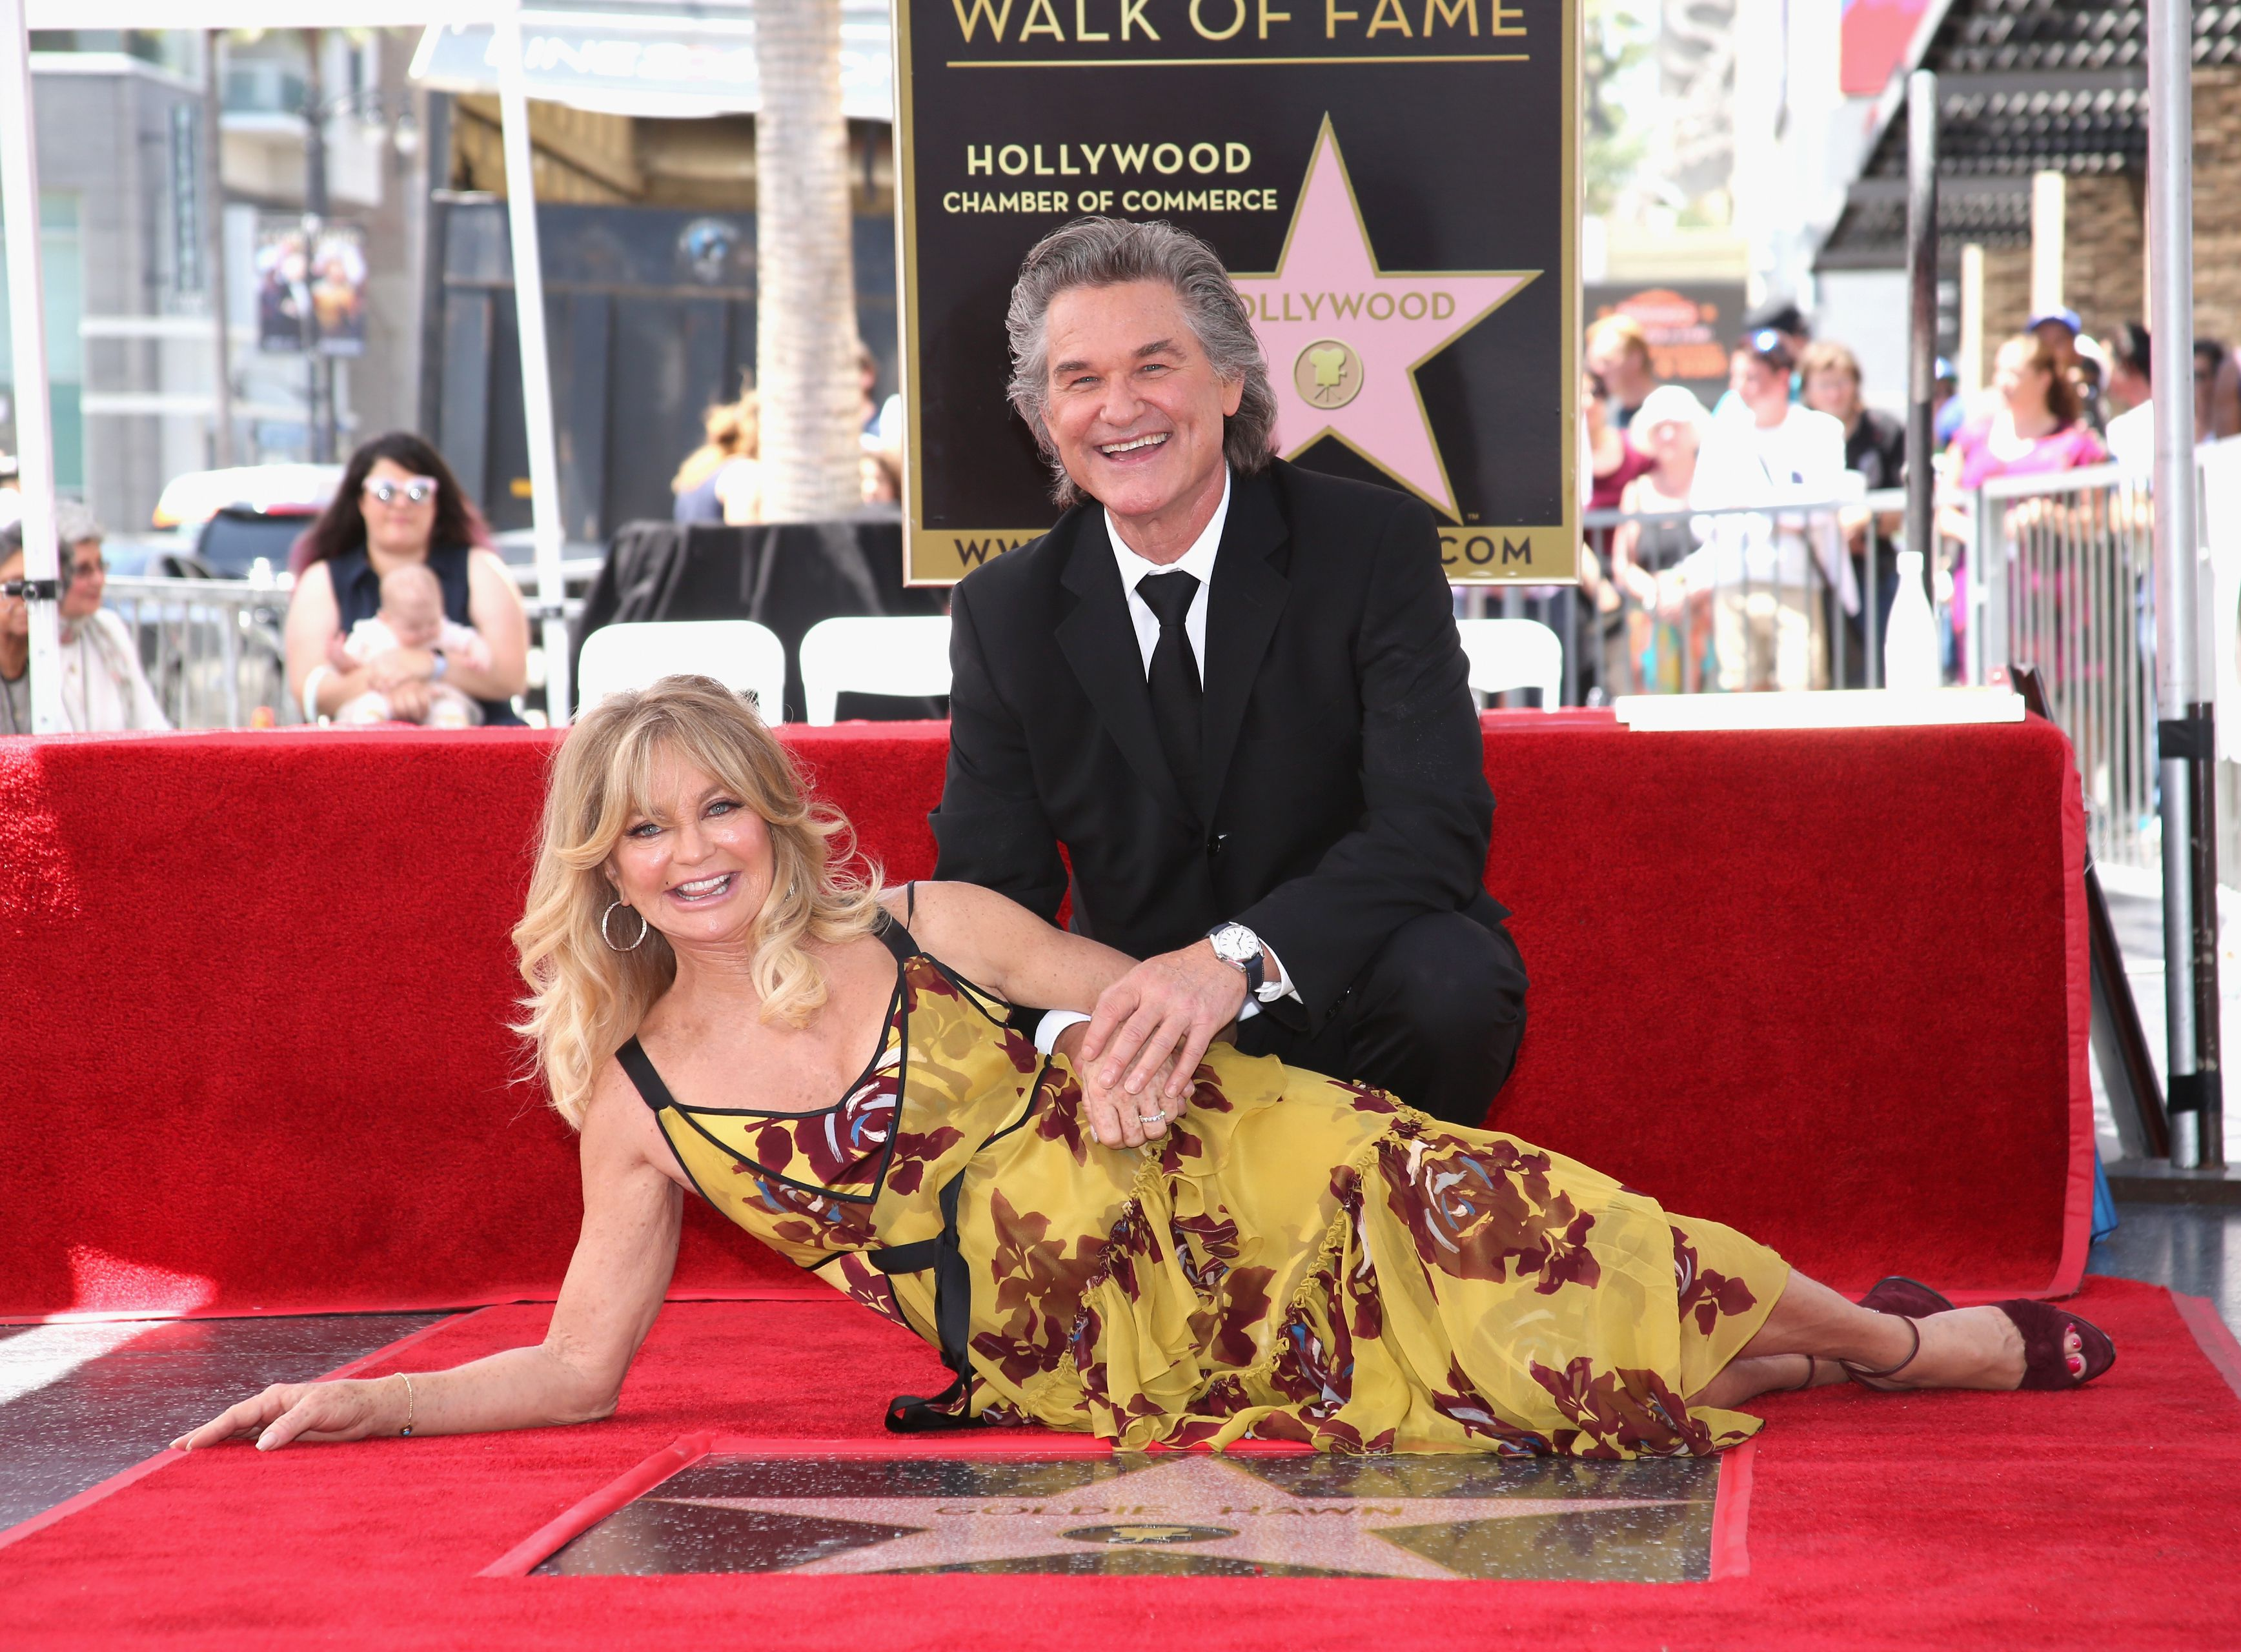 Ways To See A Celebrity In Hollywood And Los Angeles